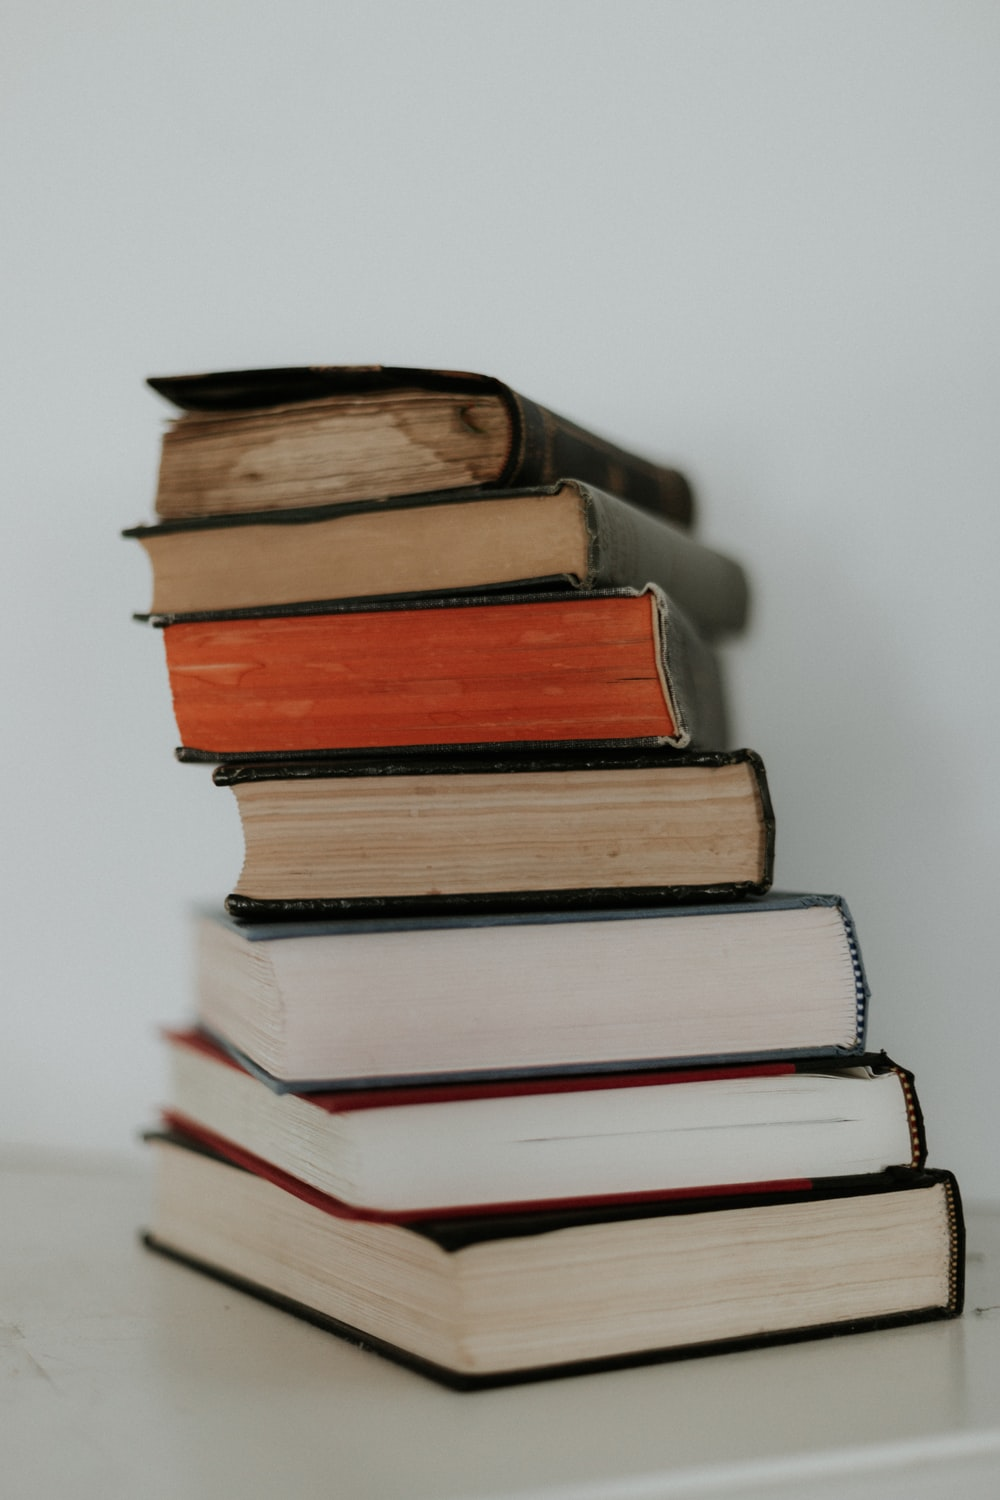 brown and red books on white surface